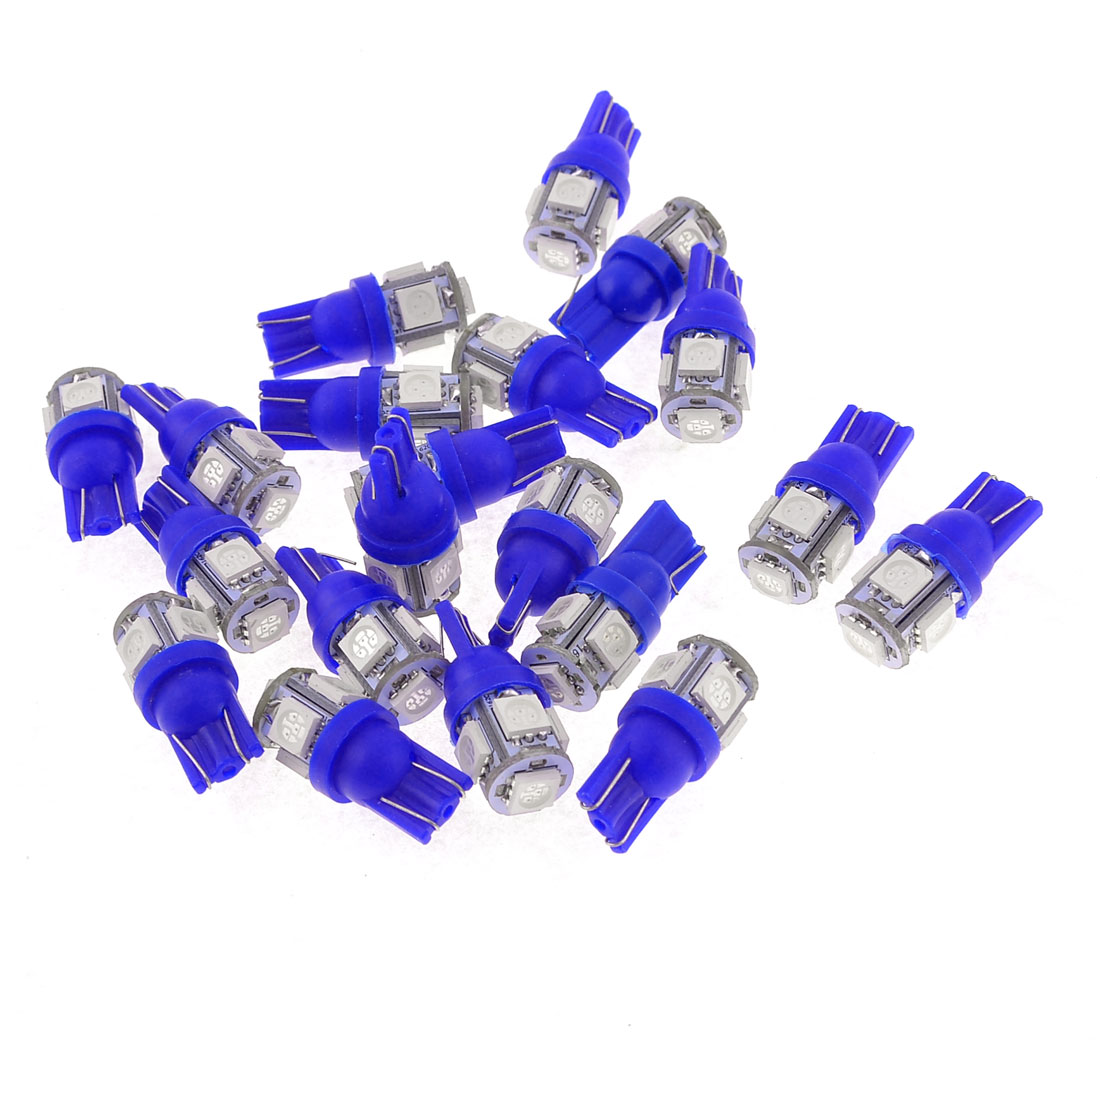 20PCS T10 194 168 W5W 5050 SMD 5 LED Car Side Light Bulb Dashboard Lamp Blue